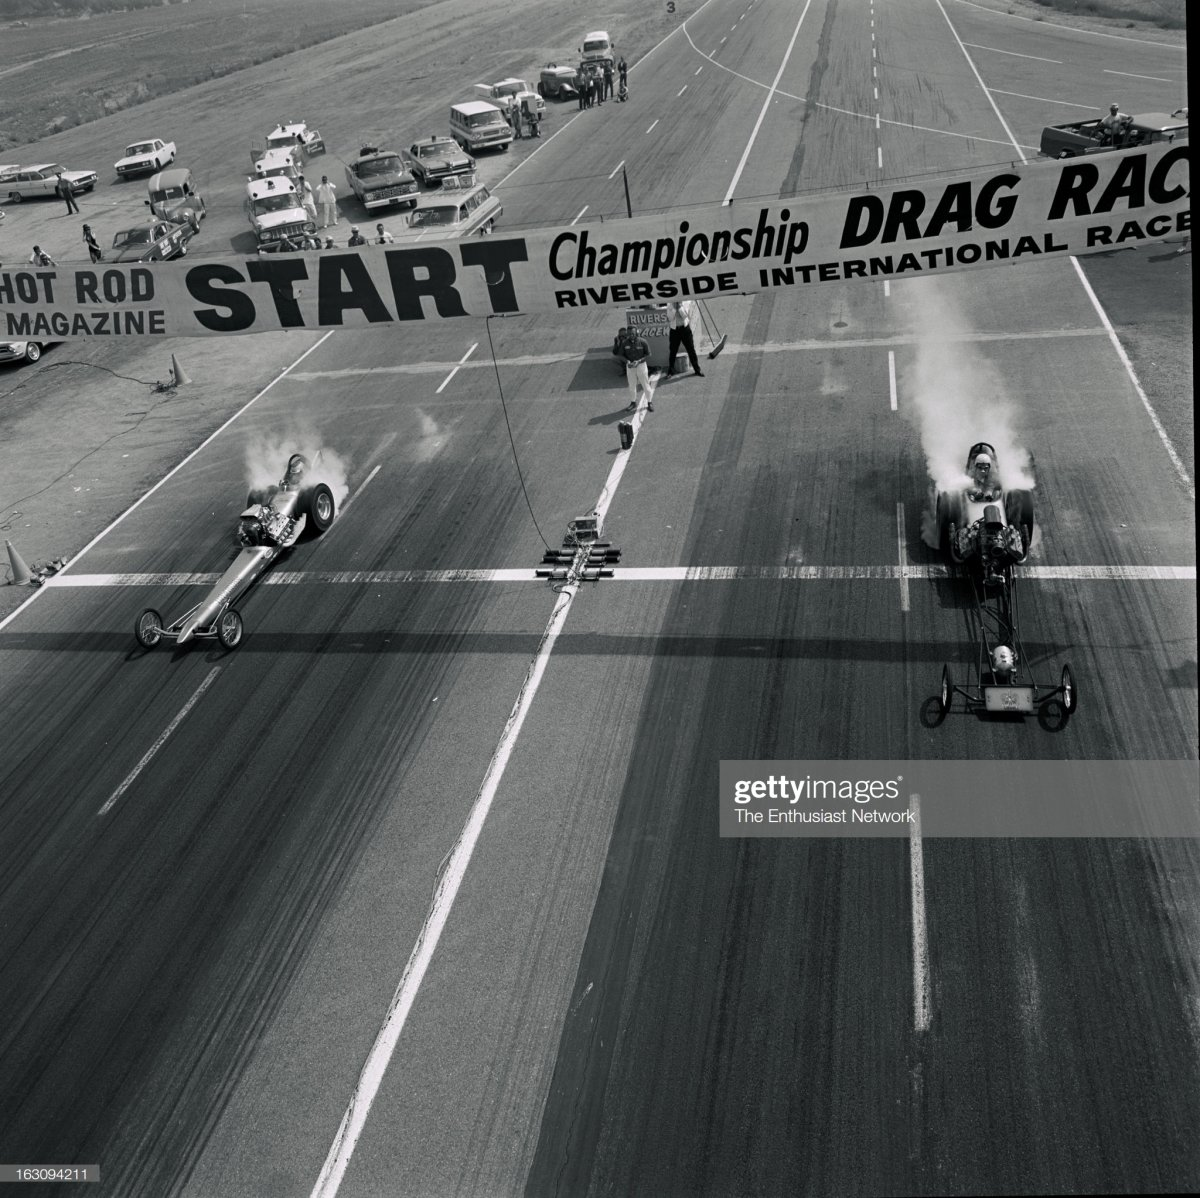 1965 - 2nd Annual Hot Rod Magazine Championship Drag Races..jpg